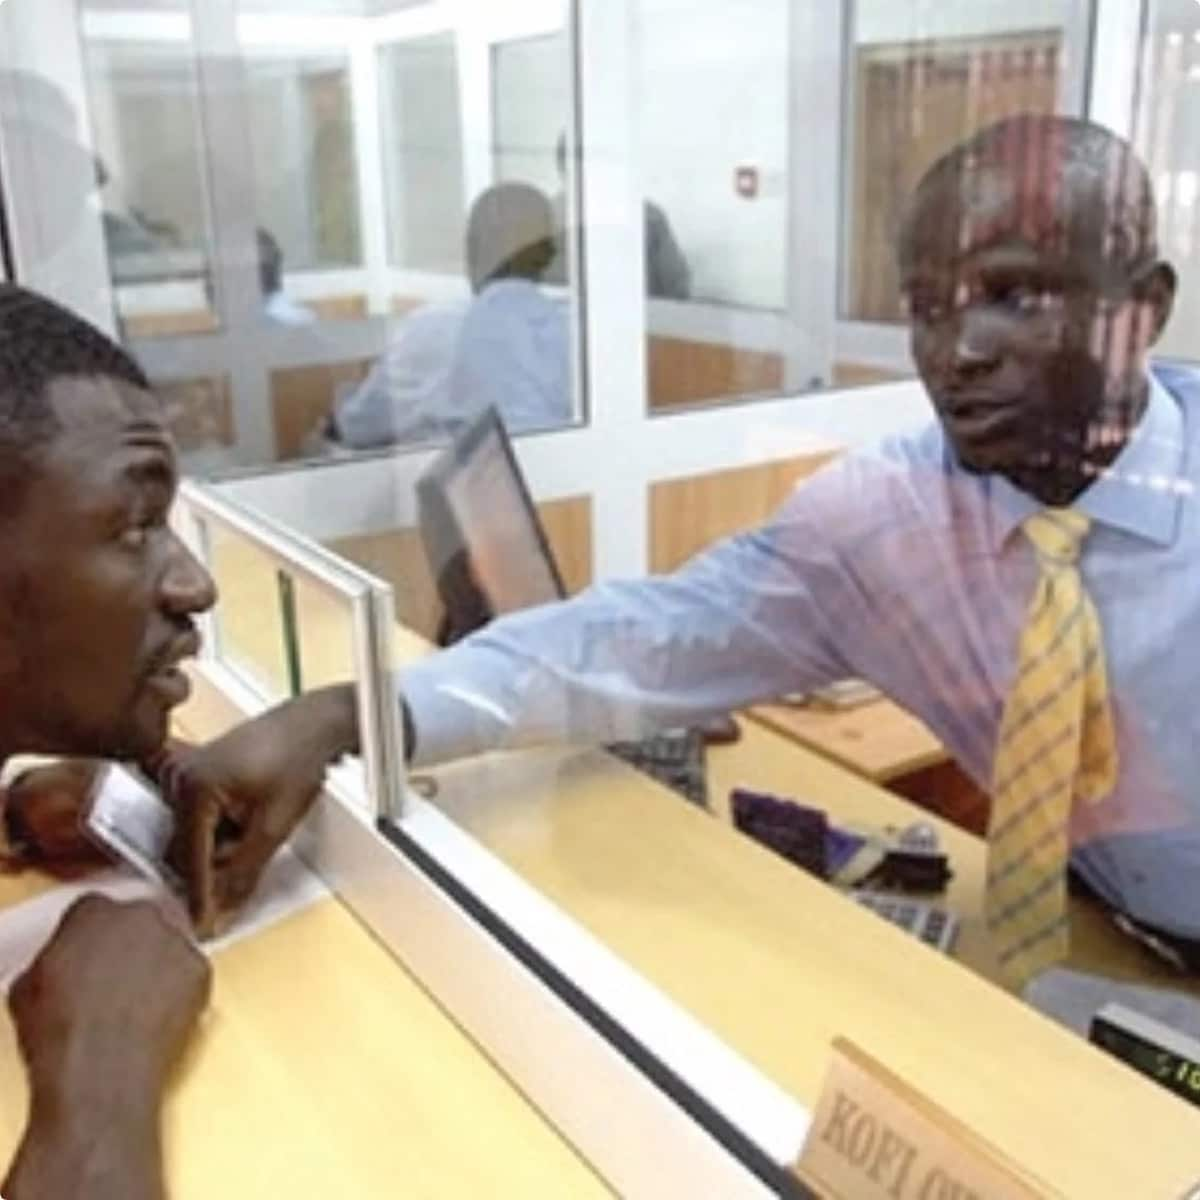 5 highly-regarded jobs in Ghana that do not pay high salaries like many people think